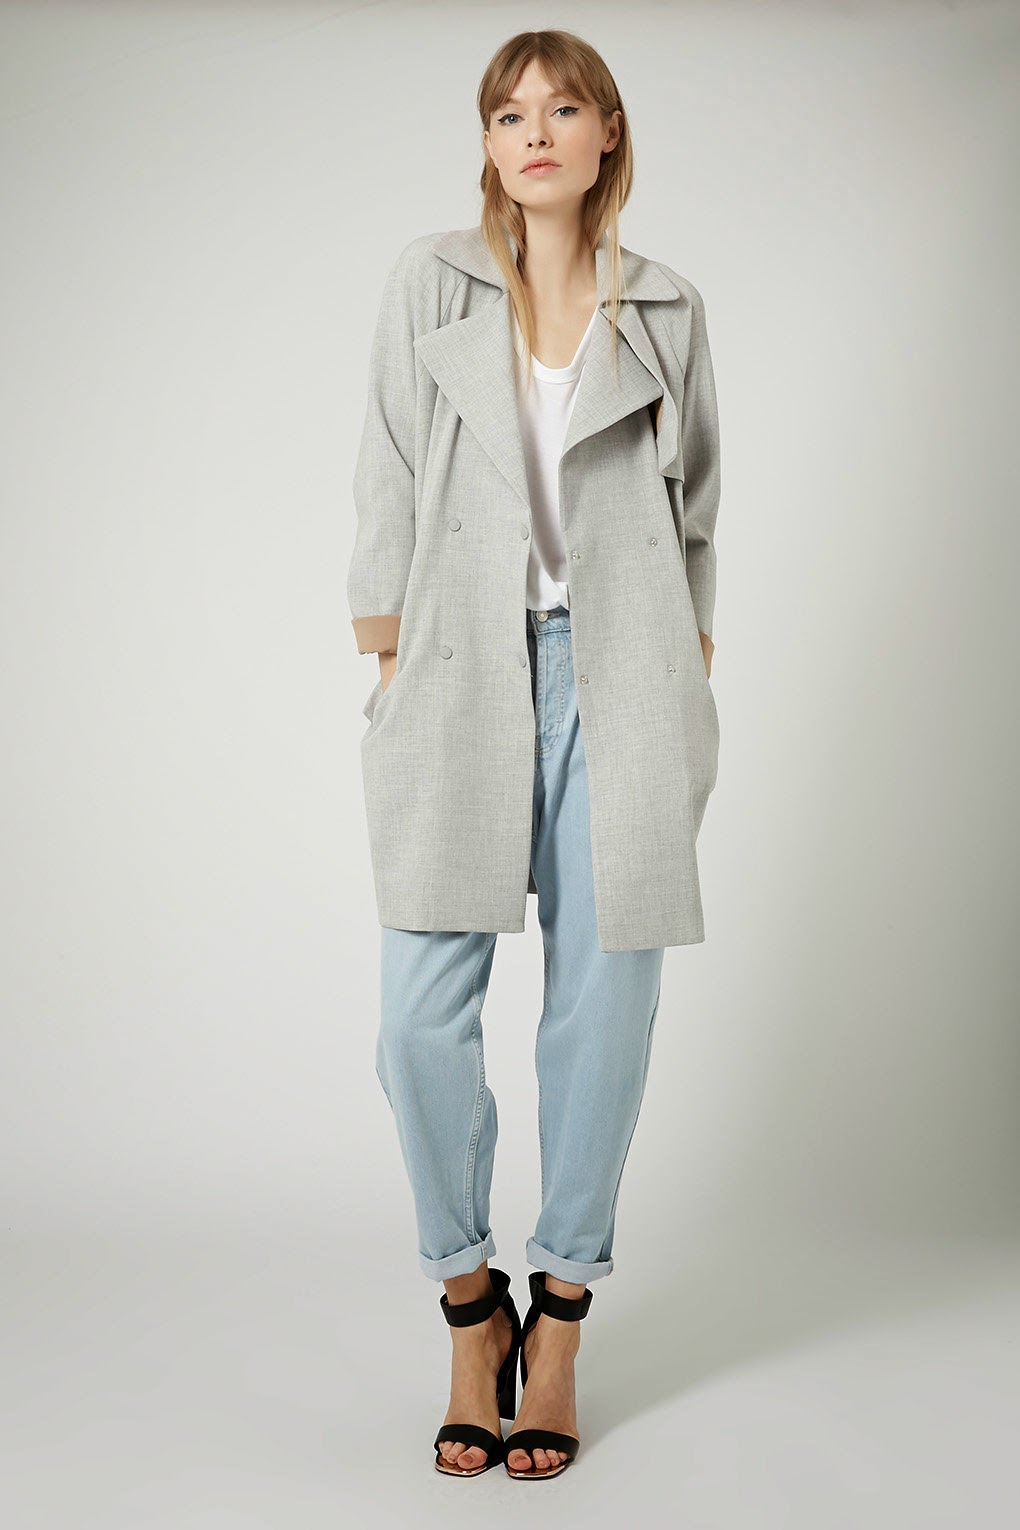 topshop grey mac, topshop grey trenchcoat, grey belted mac,